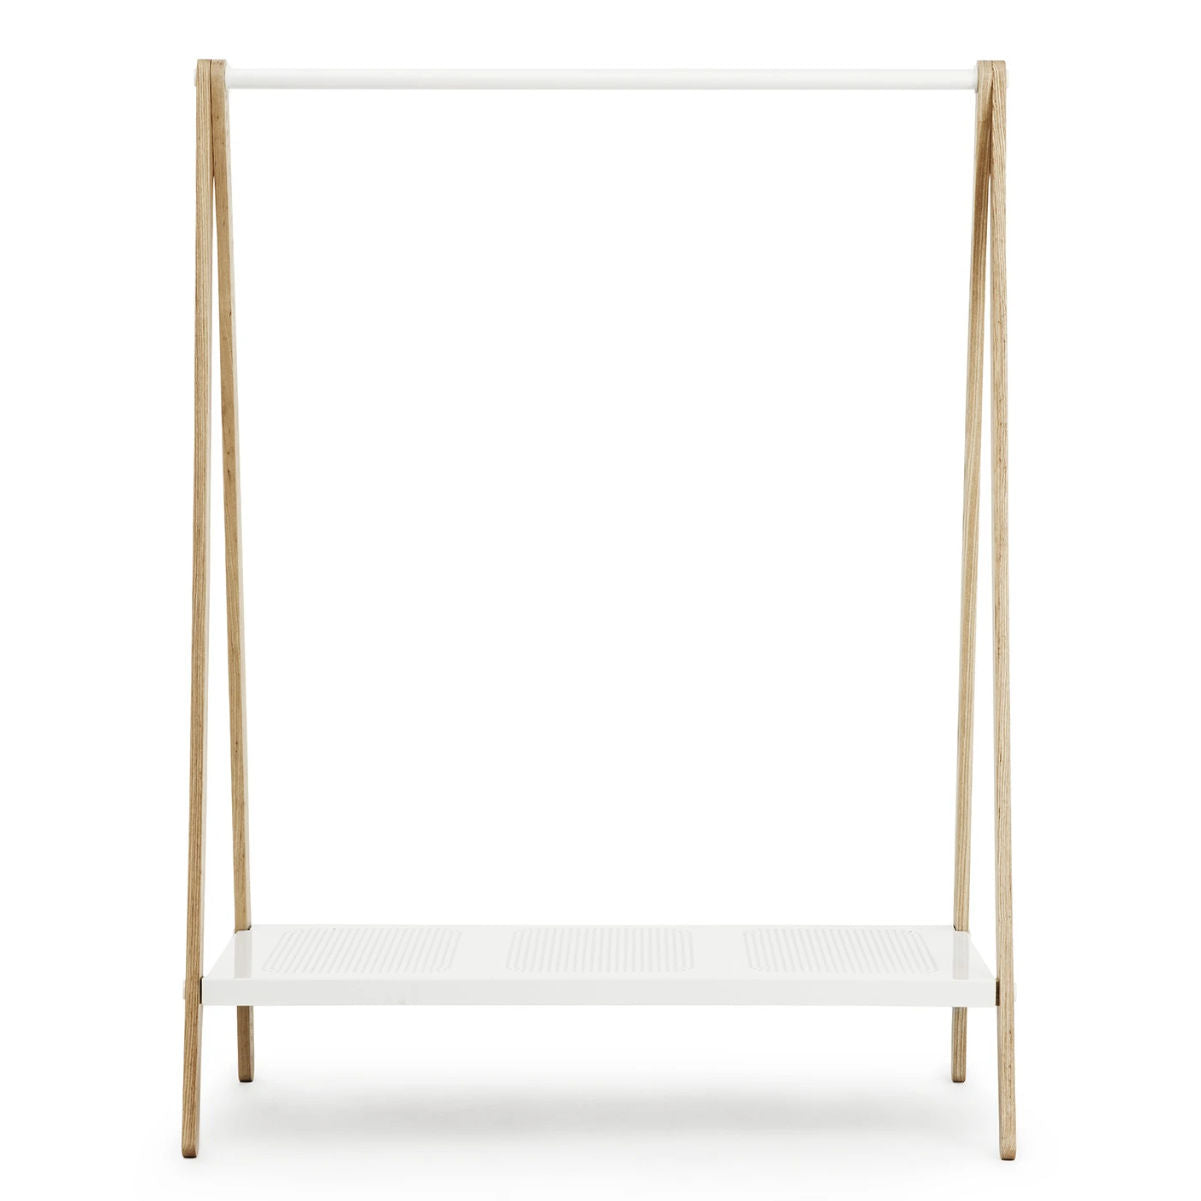 Normann Copenhagen Toj clothes rack, large, white